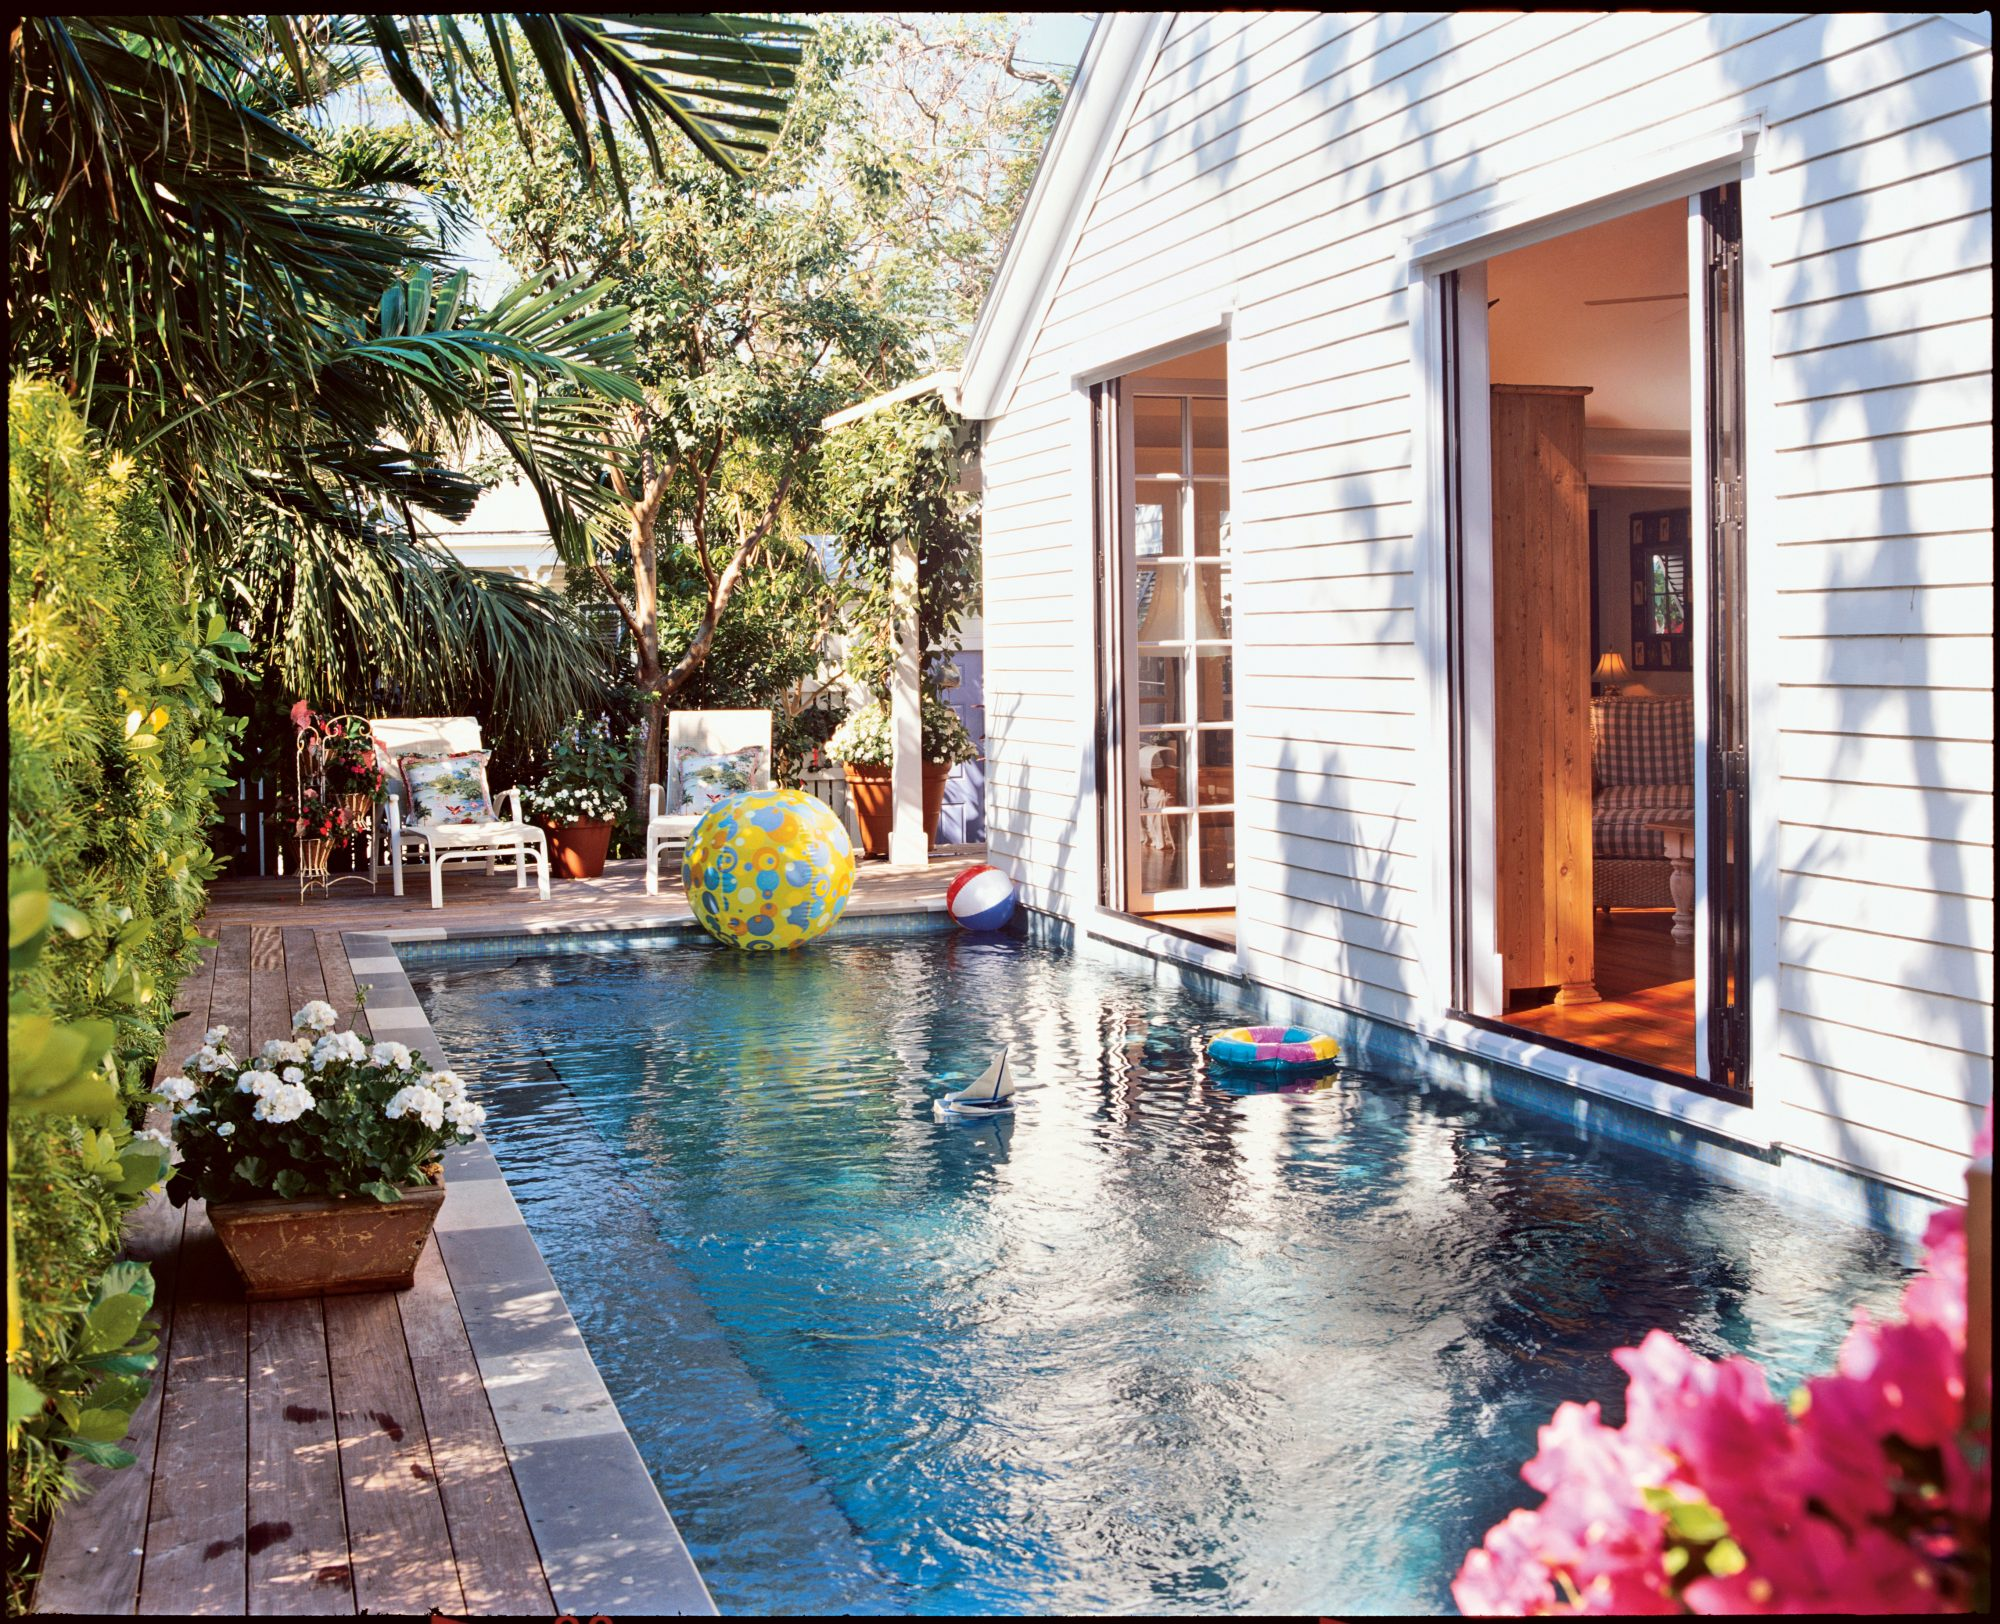 """One of the best features of this cottage is the pool, which shares a wall with the home's foundation. """"The pool's location was bred out of necessity,"""" the Carrs say. With two statuesque Spanish lime trees (a protected species) in the backyard, fitting a pool in was a bit of a challenge. But with the pool directly beside the house it becomes an extension of the living space."""